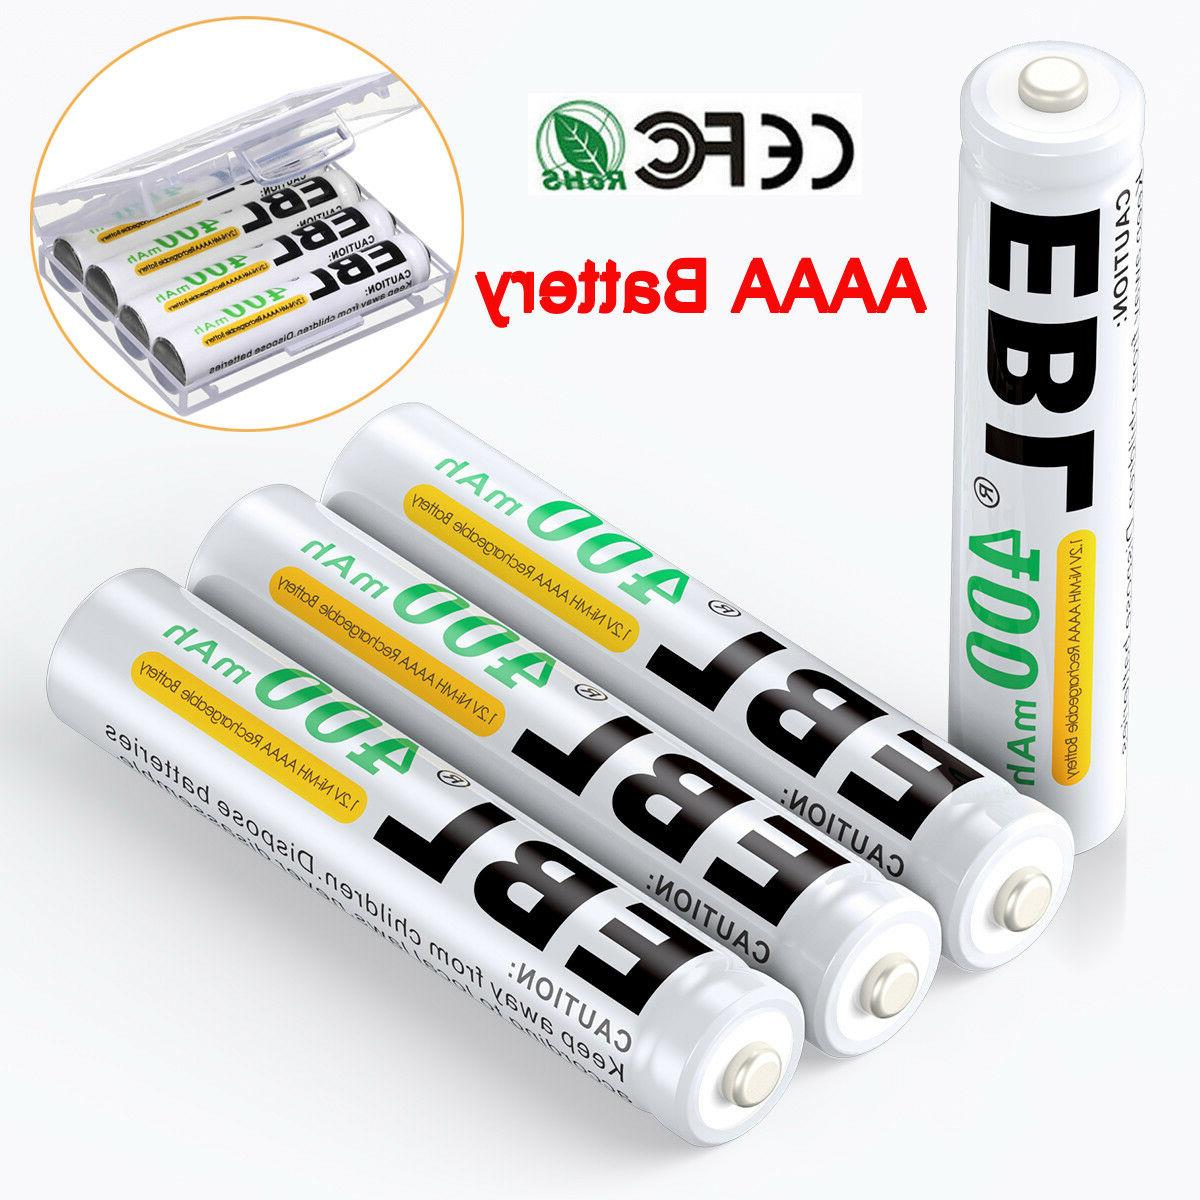 4x400mah ni mh rechargeable aaaa batteries replace